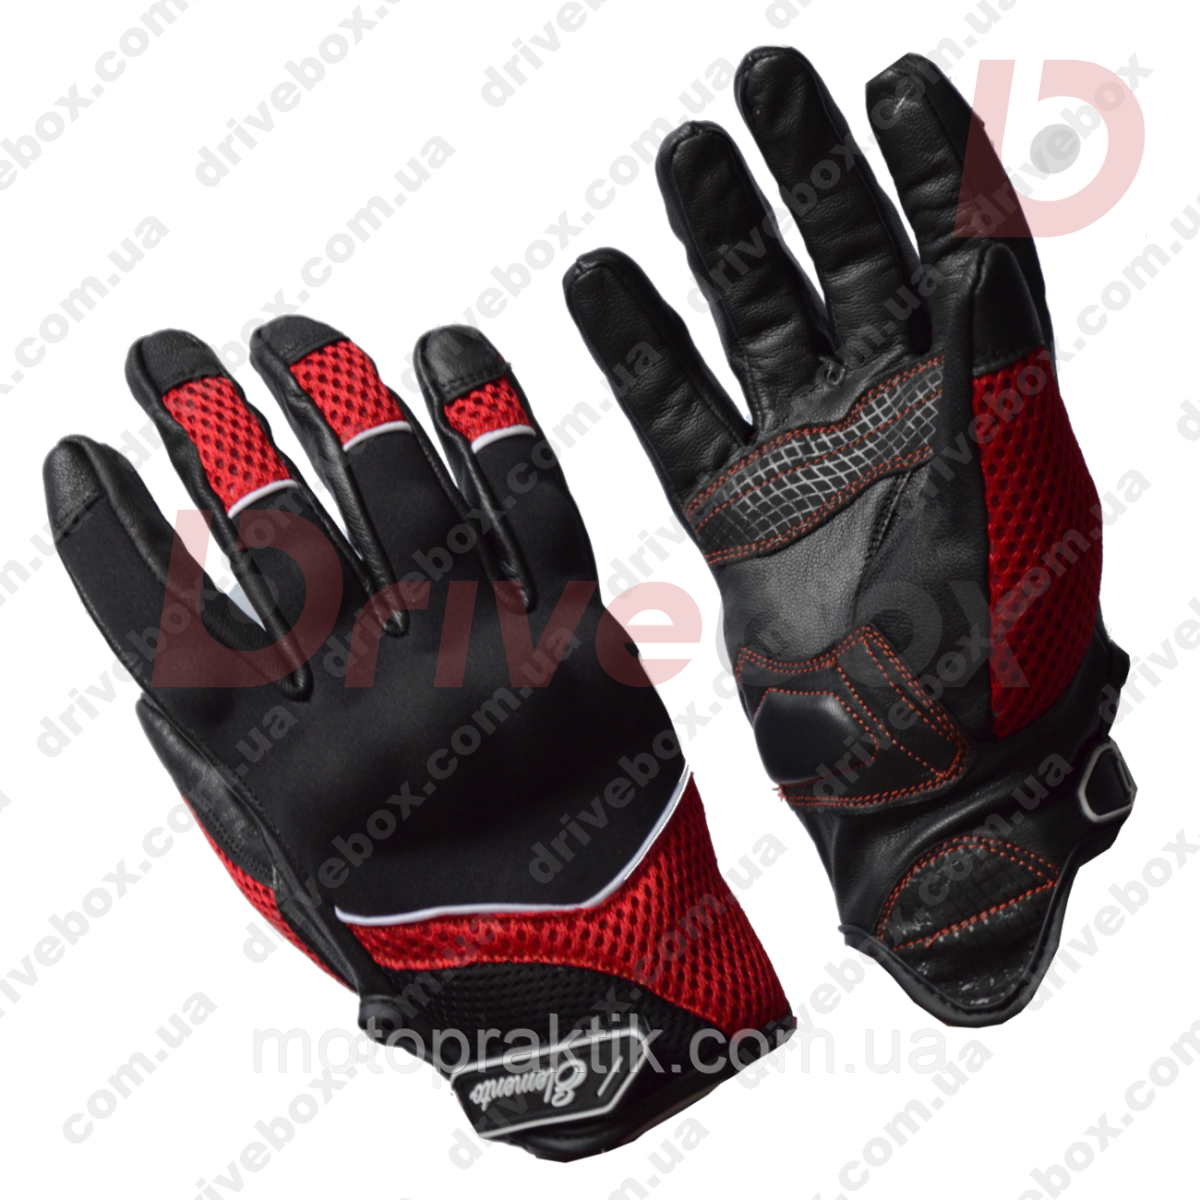 Elemento 192 Free Ride Gloves Blk/Red, L Мотоперчатки дорожные